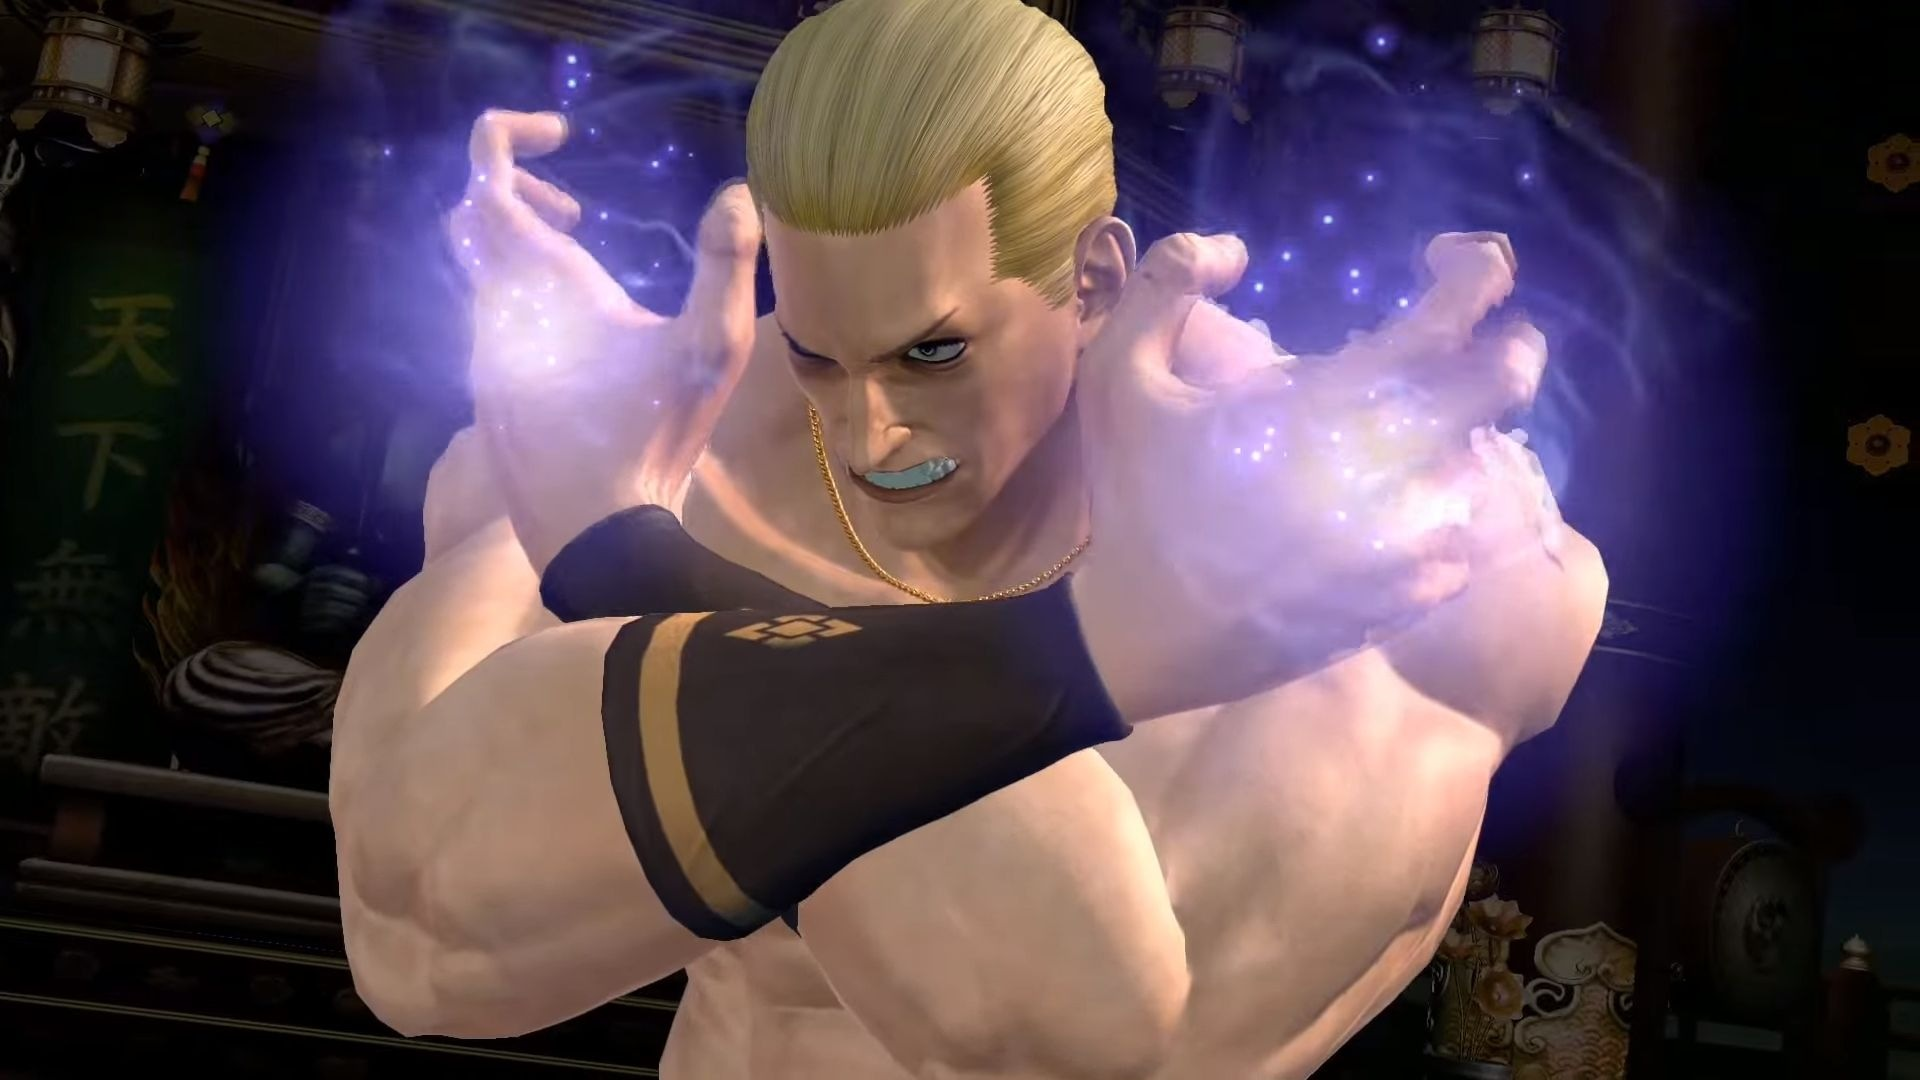 Ps4 Exclusive The King Of Fighters Xiv Gets New Trailer Geese Howard And Ryo Sakazaki Return